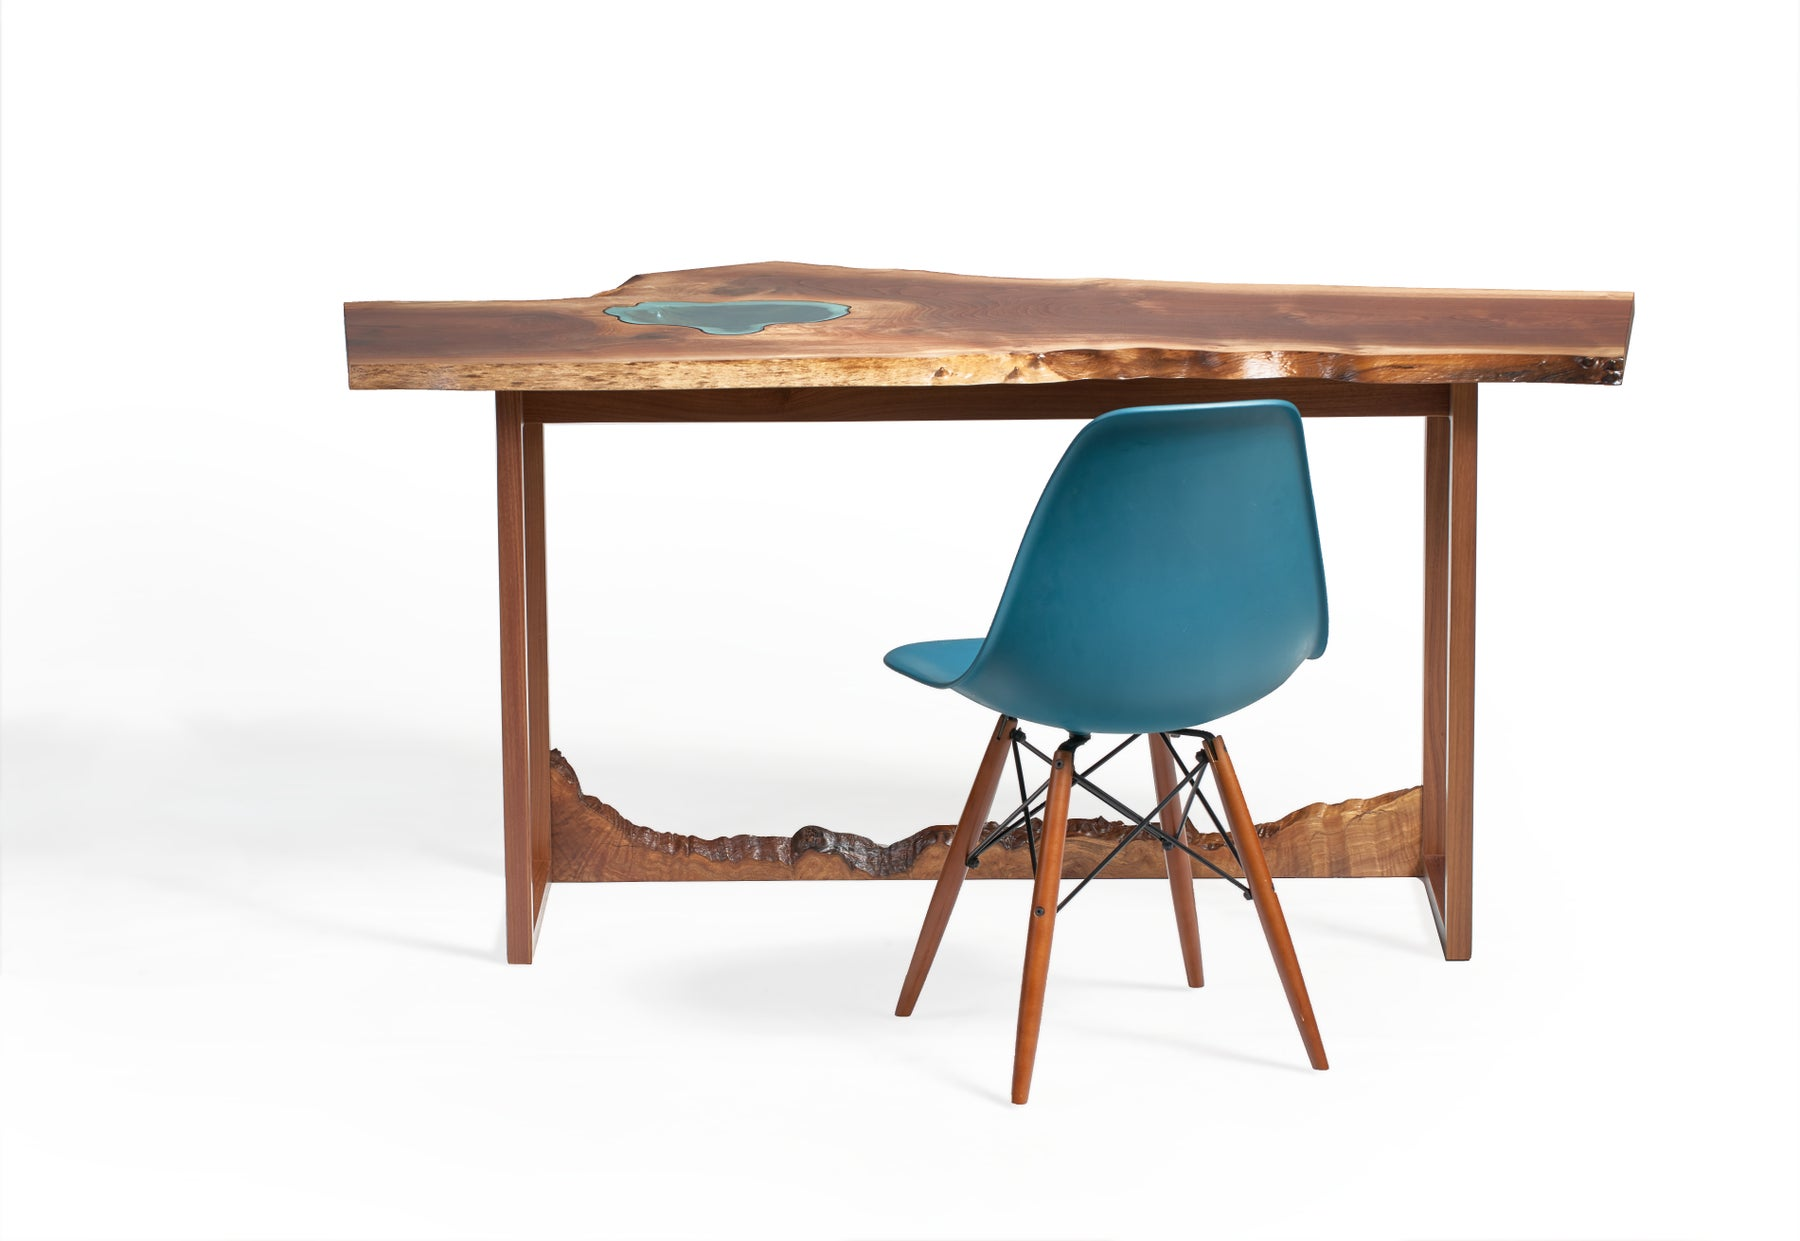 Admirable Home Greg Klassen Gmtry Best Dining Table And Chair Ideas Images Gmtryco